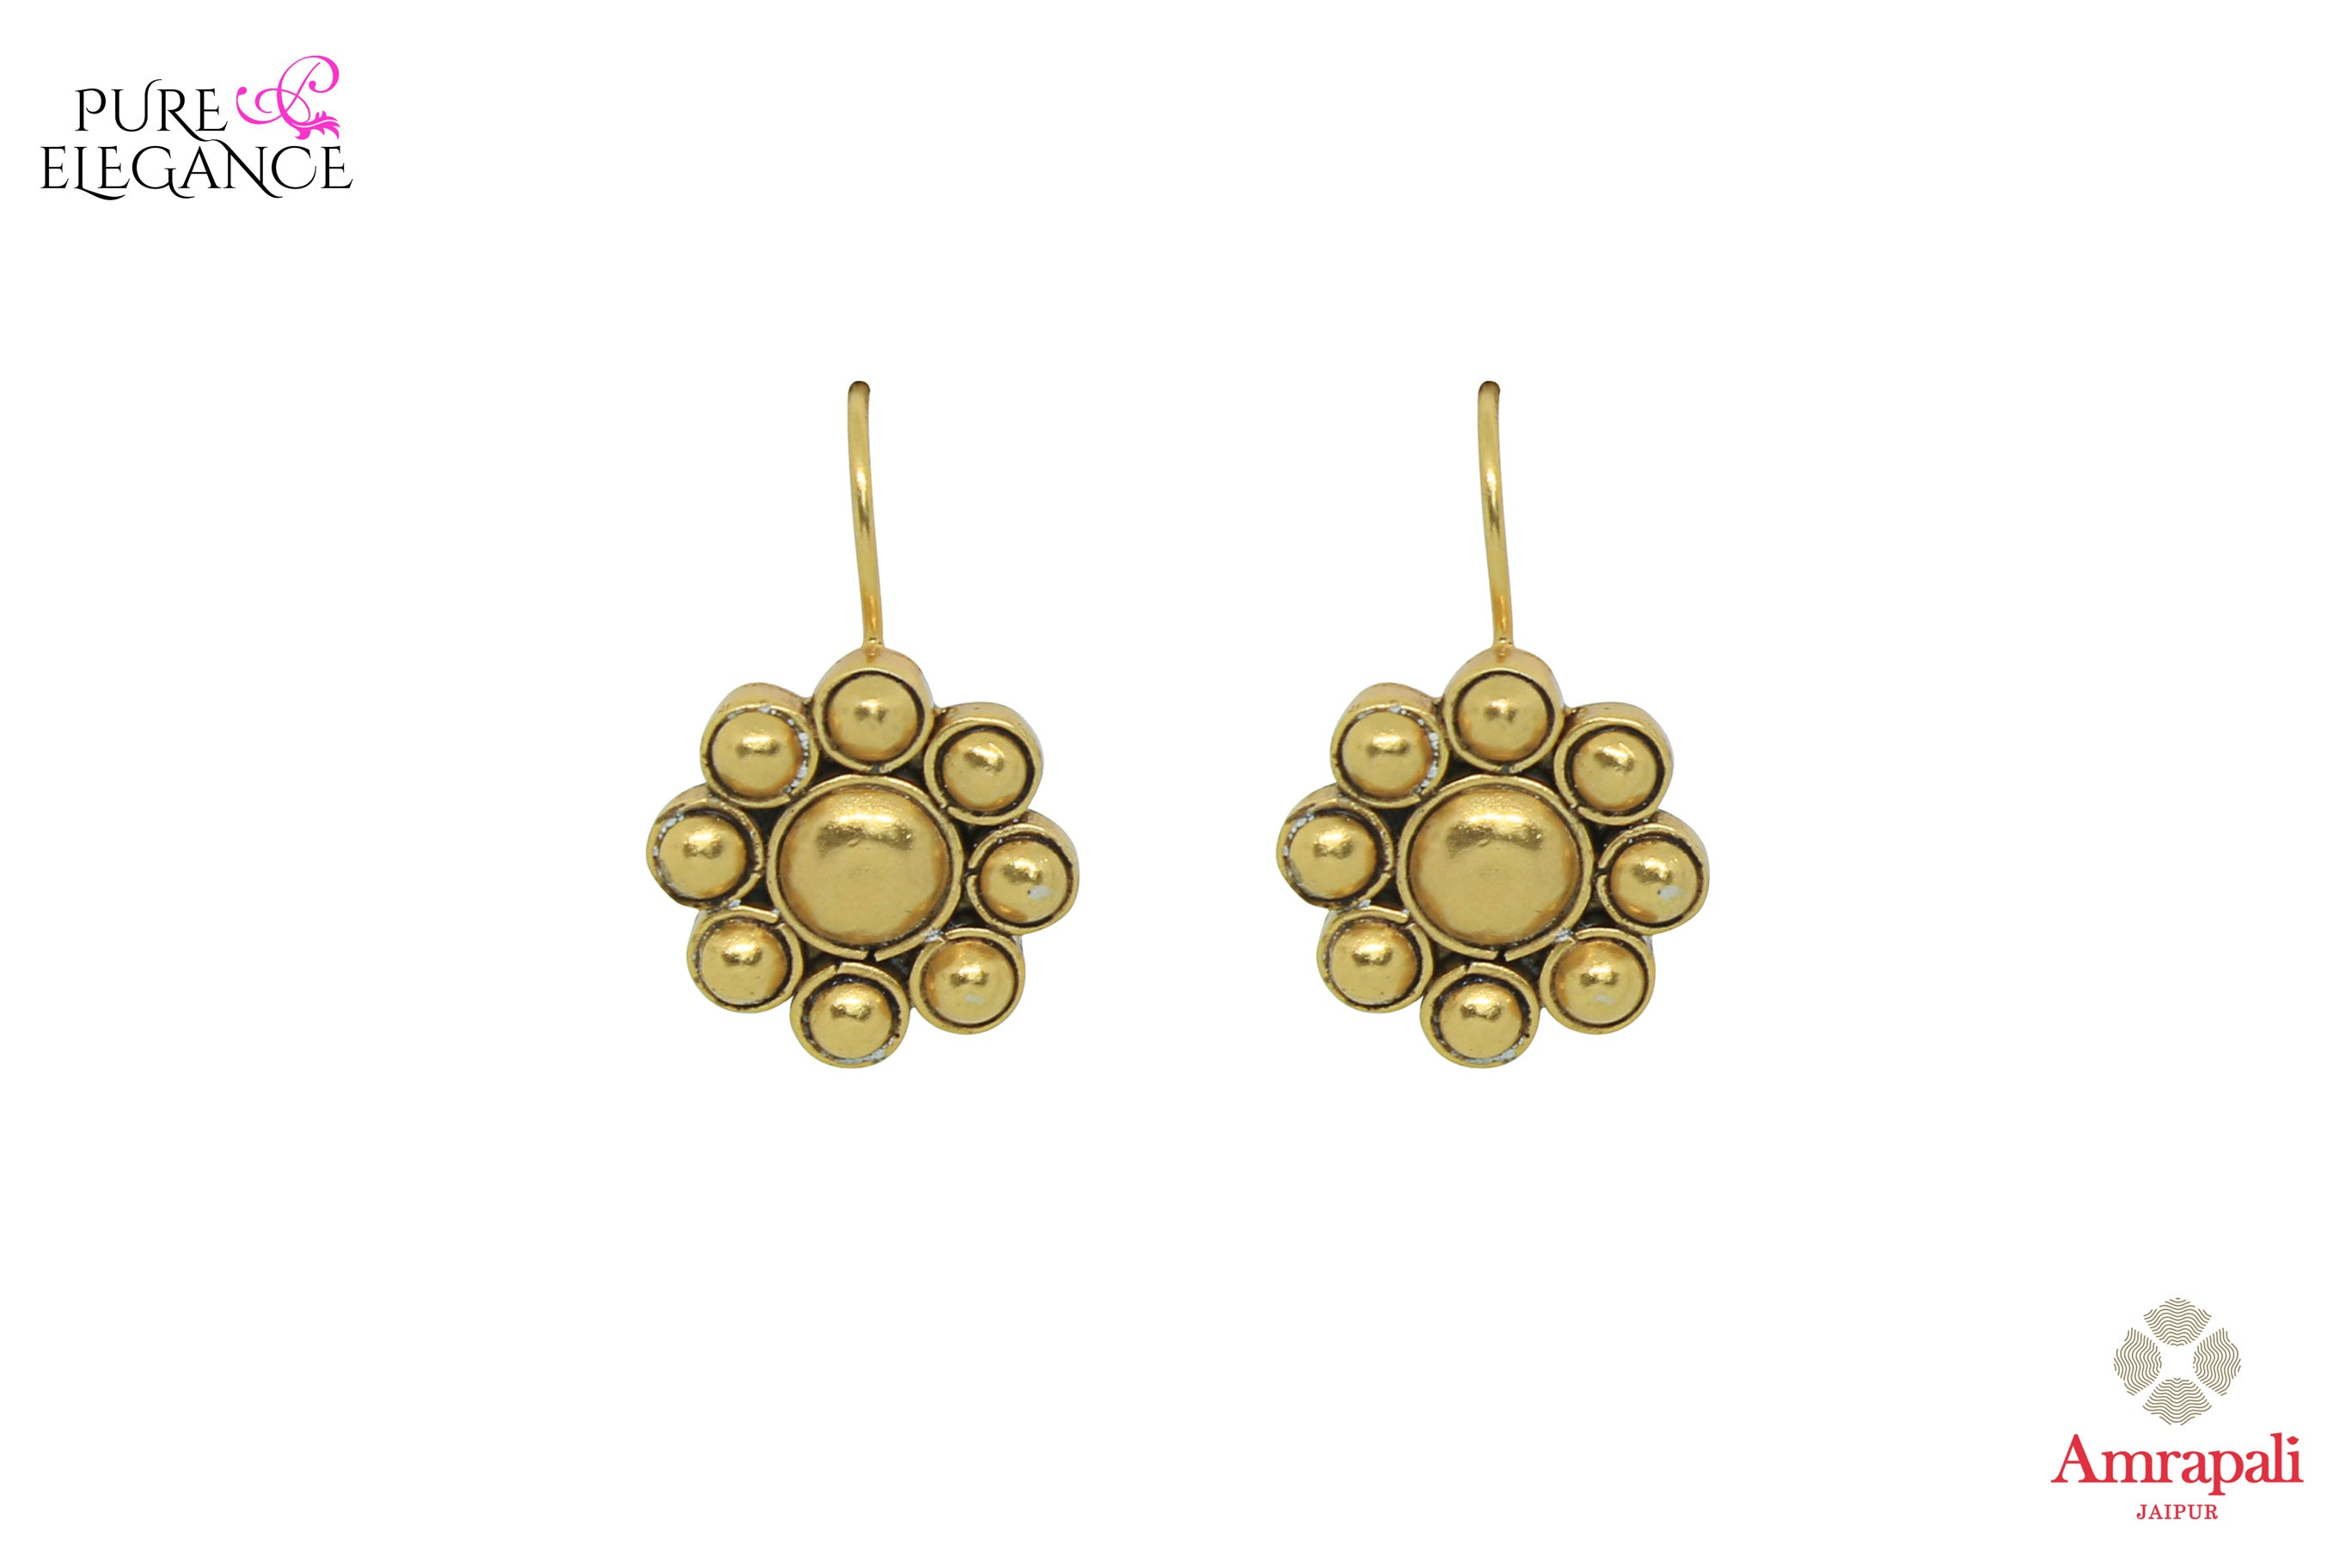 Shop Amrapali silver gold plated flower earrings online in USA. Find an exquisite collection of handcrafted Indian jewelry in USA at Pure Elegance Indian fashion store. Complete your festive look with beautiful silver gold plated necklaces, silver gold plated earrings, silver jewelry from our online store.-front